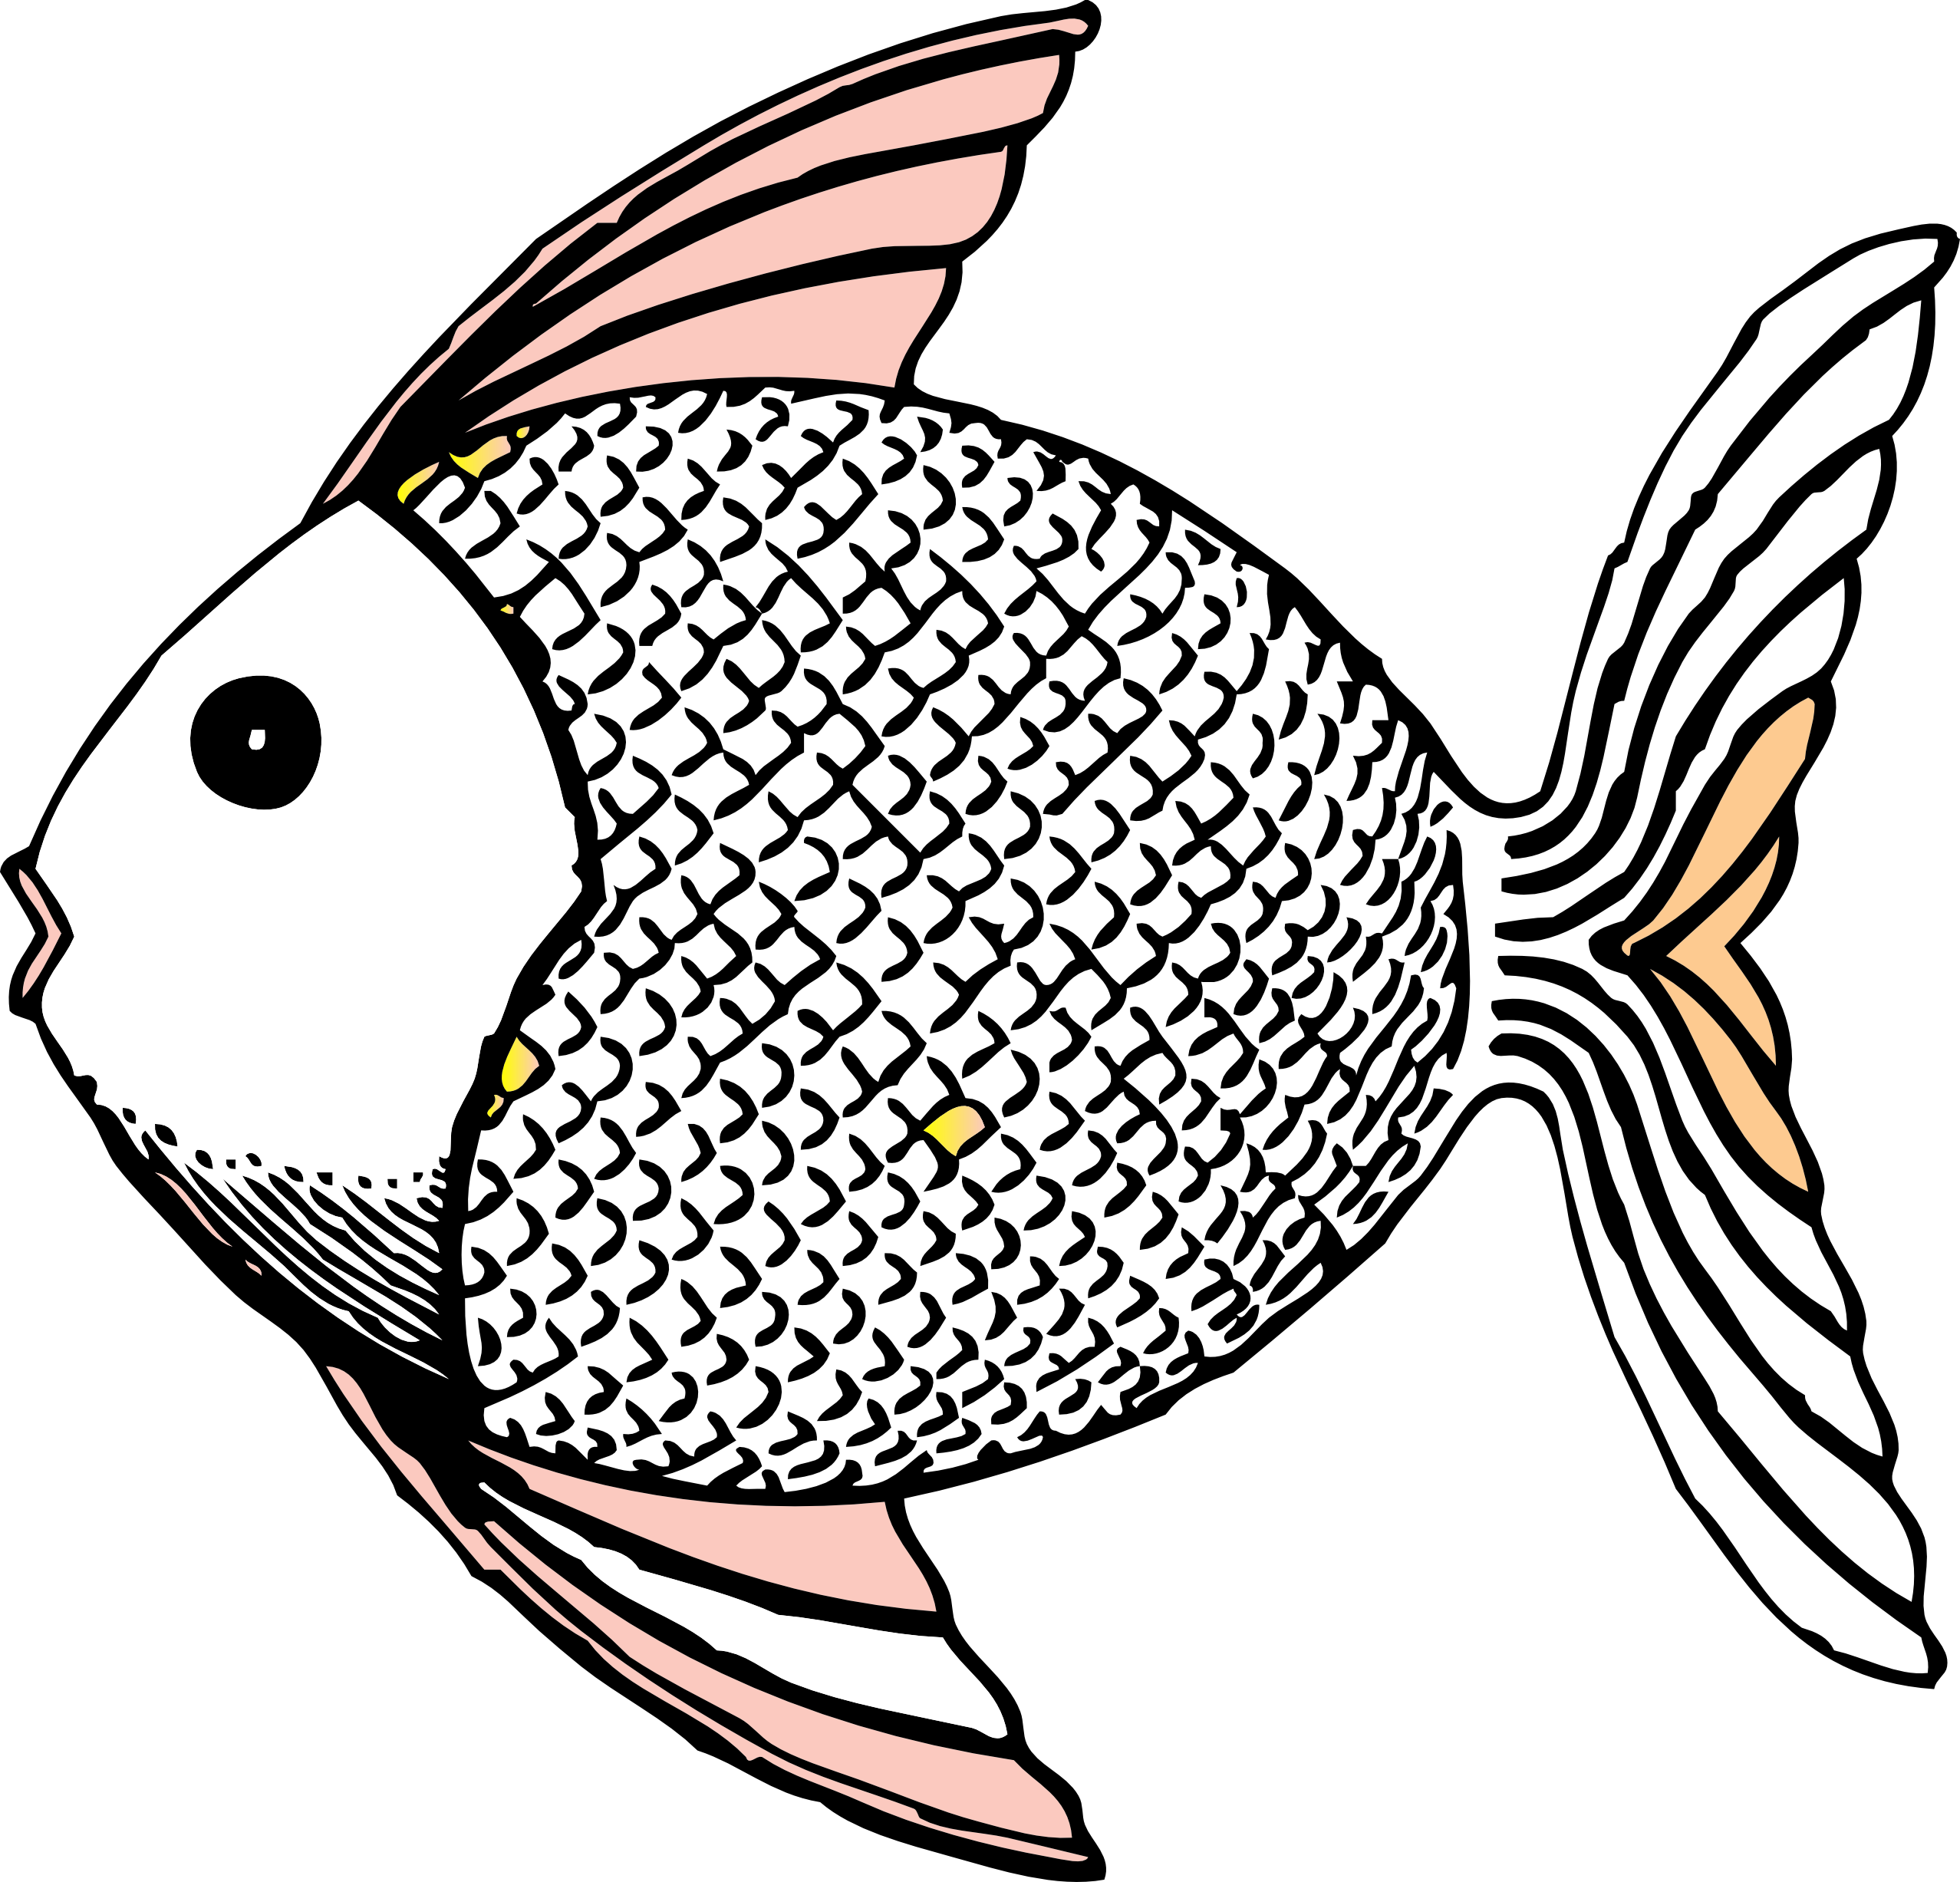 png library download Fishes drawing. Fish clip art black